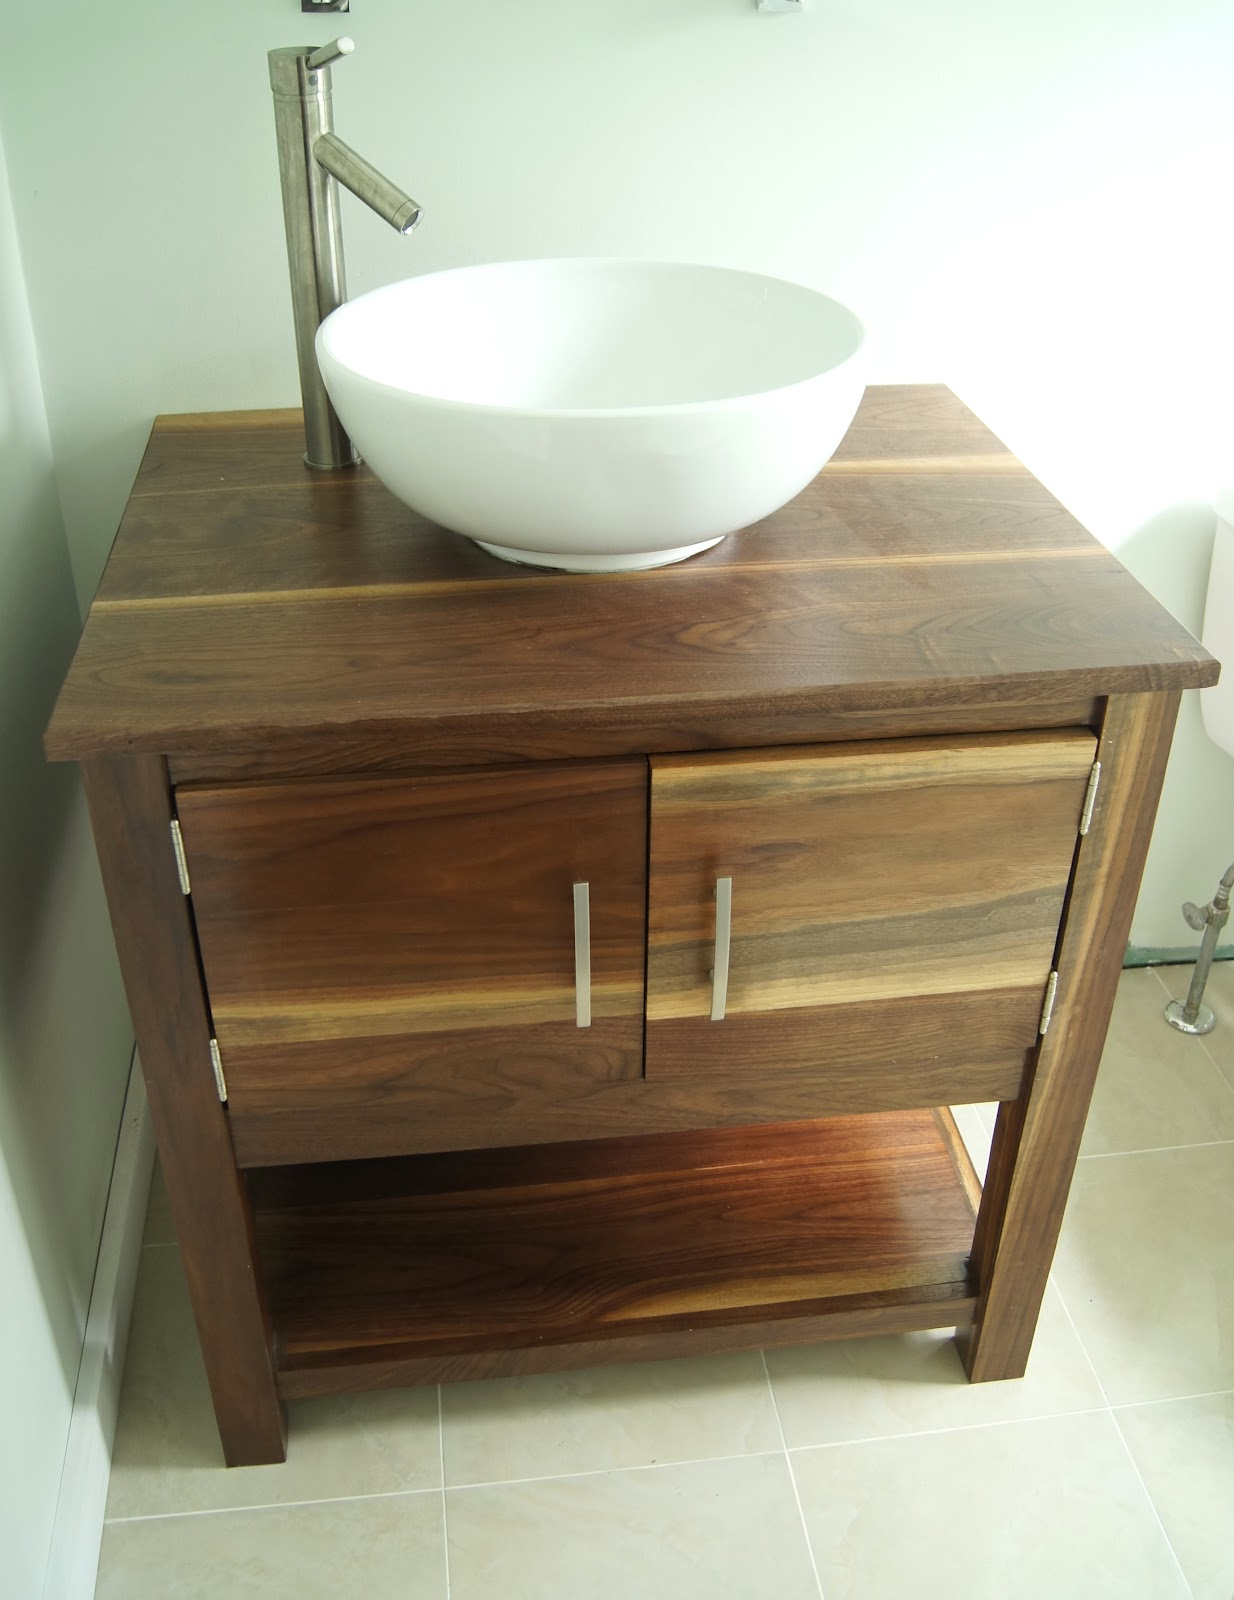 Wightman specialty woods diy bathroom vanity for Diy bathroom sink cabinet